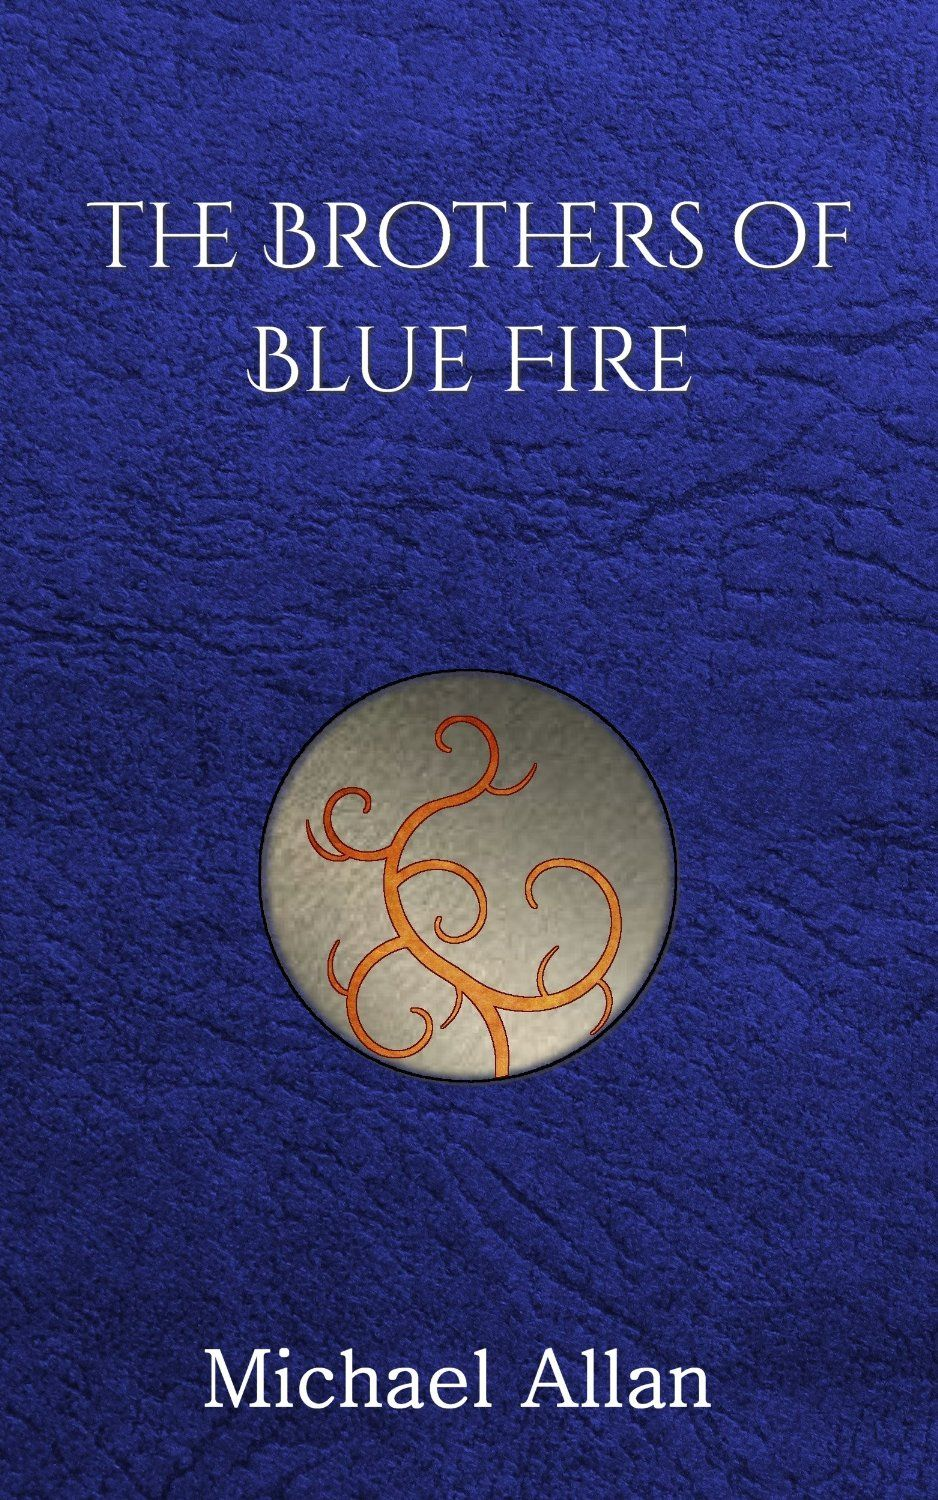 The Brothers of Blue Fire reunite & put aside their arguments when 1 of them goes missing in a sinister plot